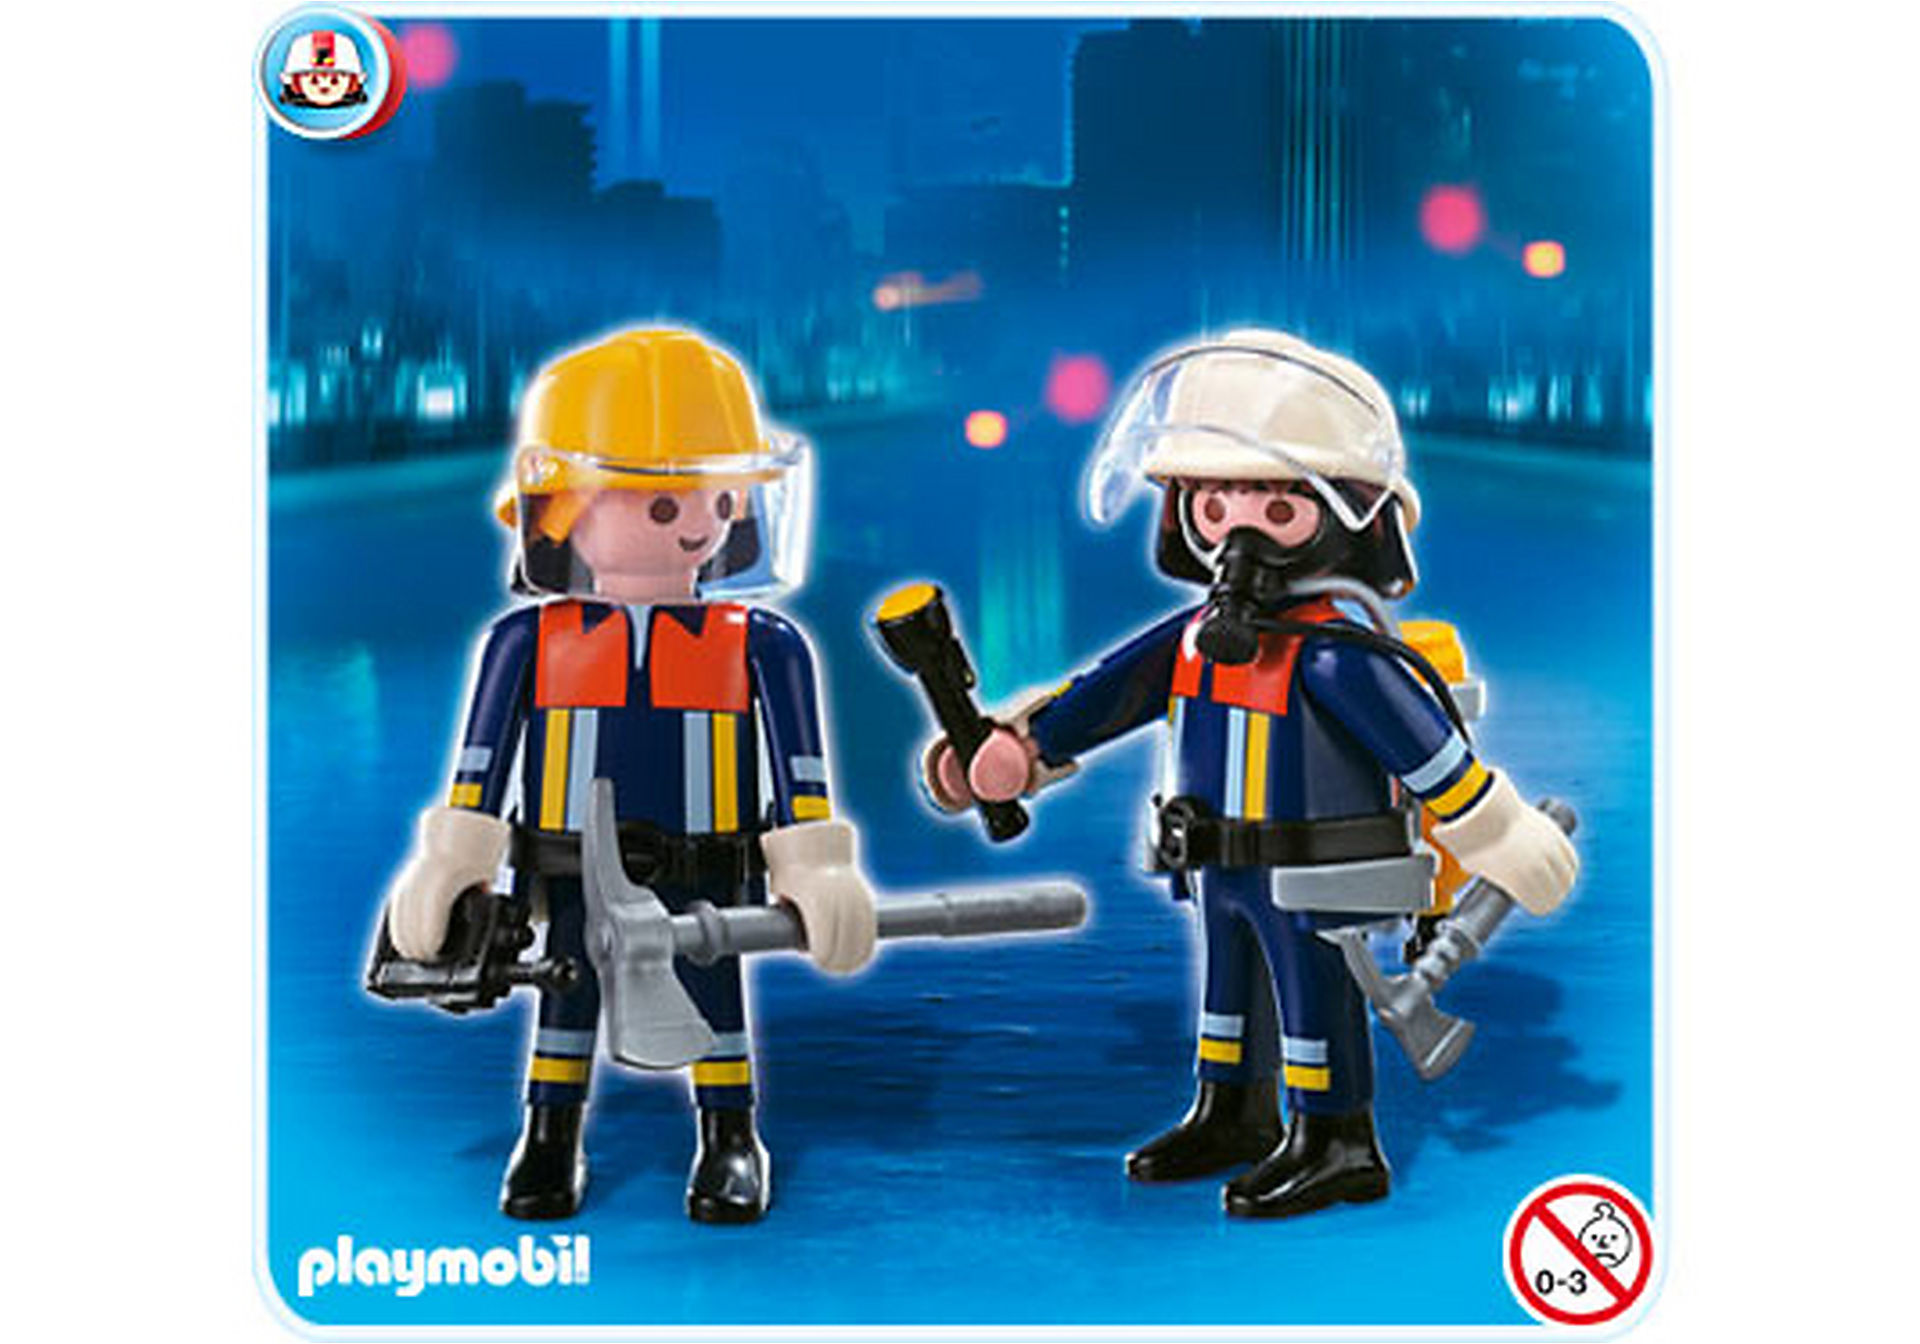 http://media.playmobil.com/i/playmobil/4914-A_product_detail/Playmobil Duo Pompiers